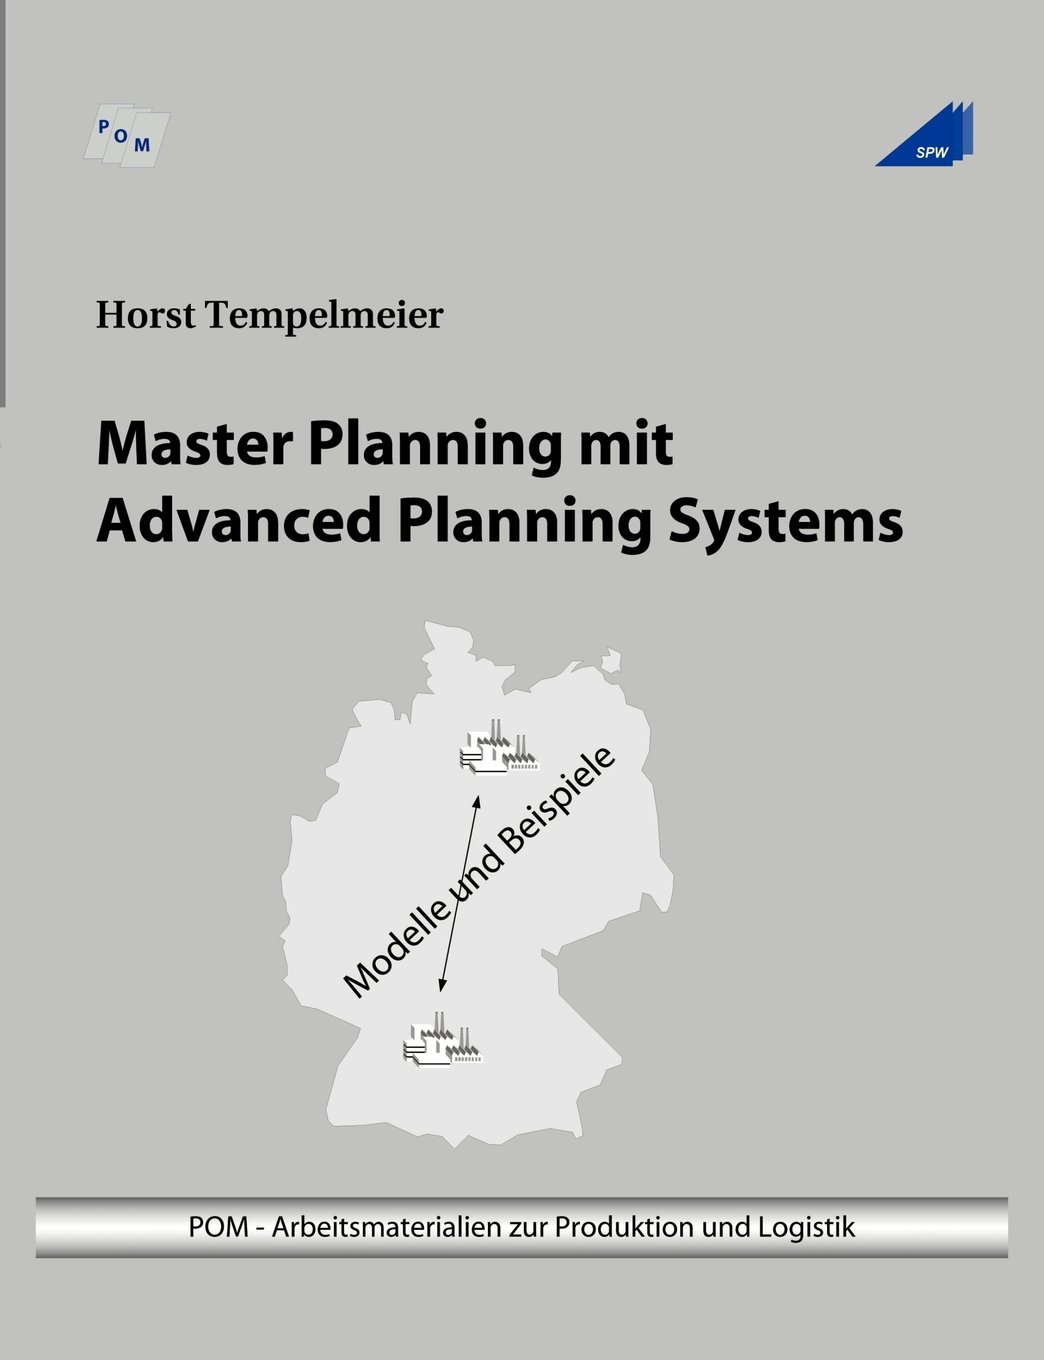 Master Planning mit Advanced Planning Systems